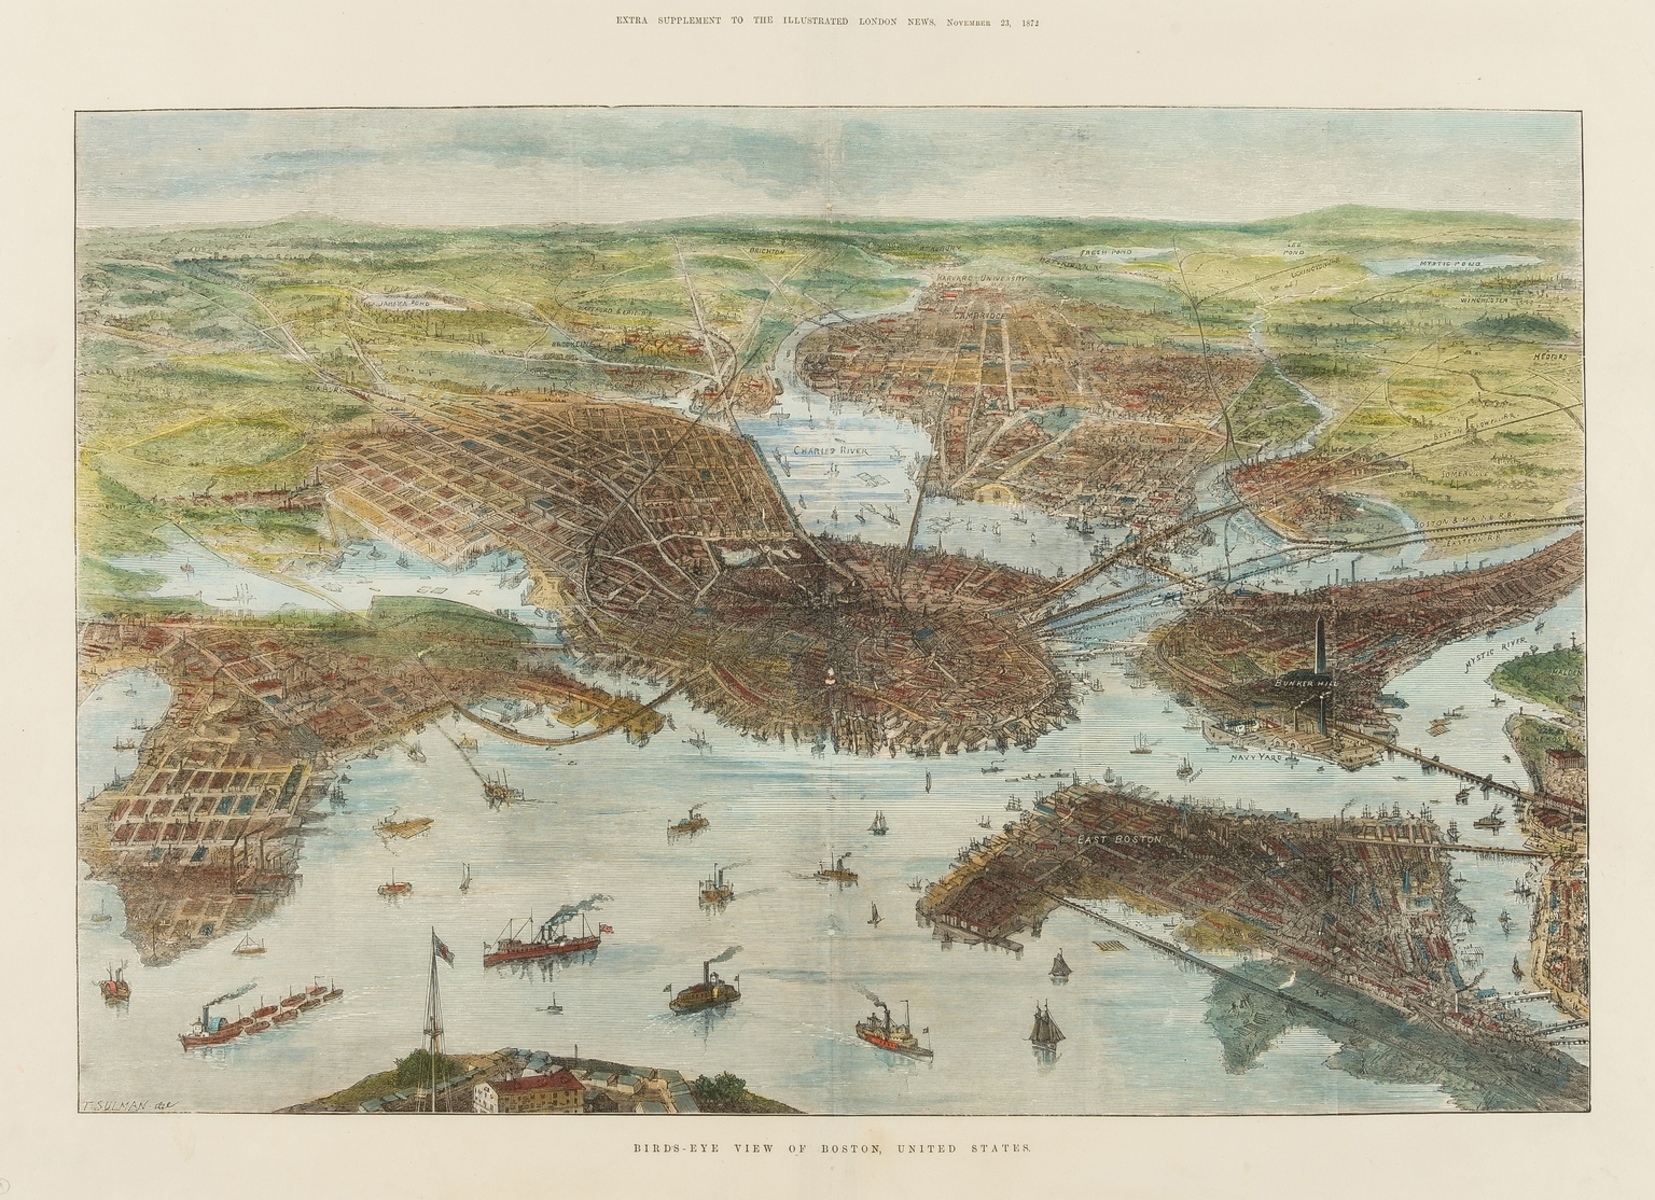 America.- Illustrated London News (The) Bird's-Eye View of Boston, United States, 1872.